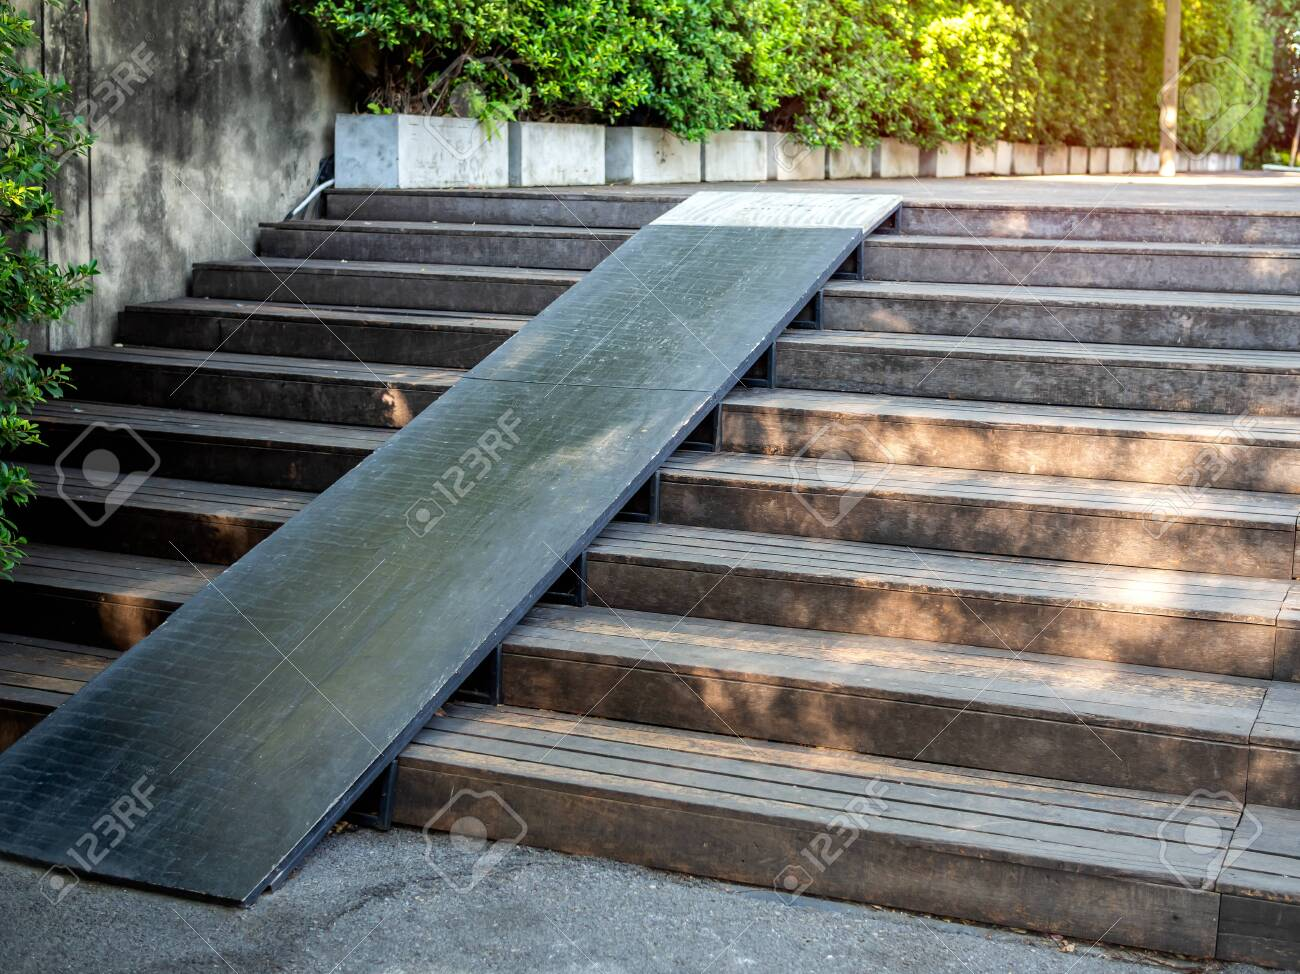 Plank Wood Stair Outdoor With Wooden Wheelchair Ramp On Green